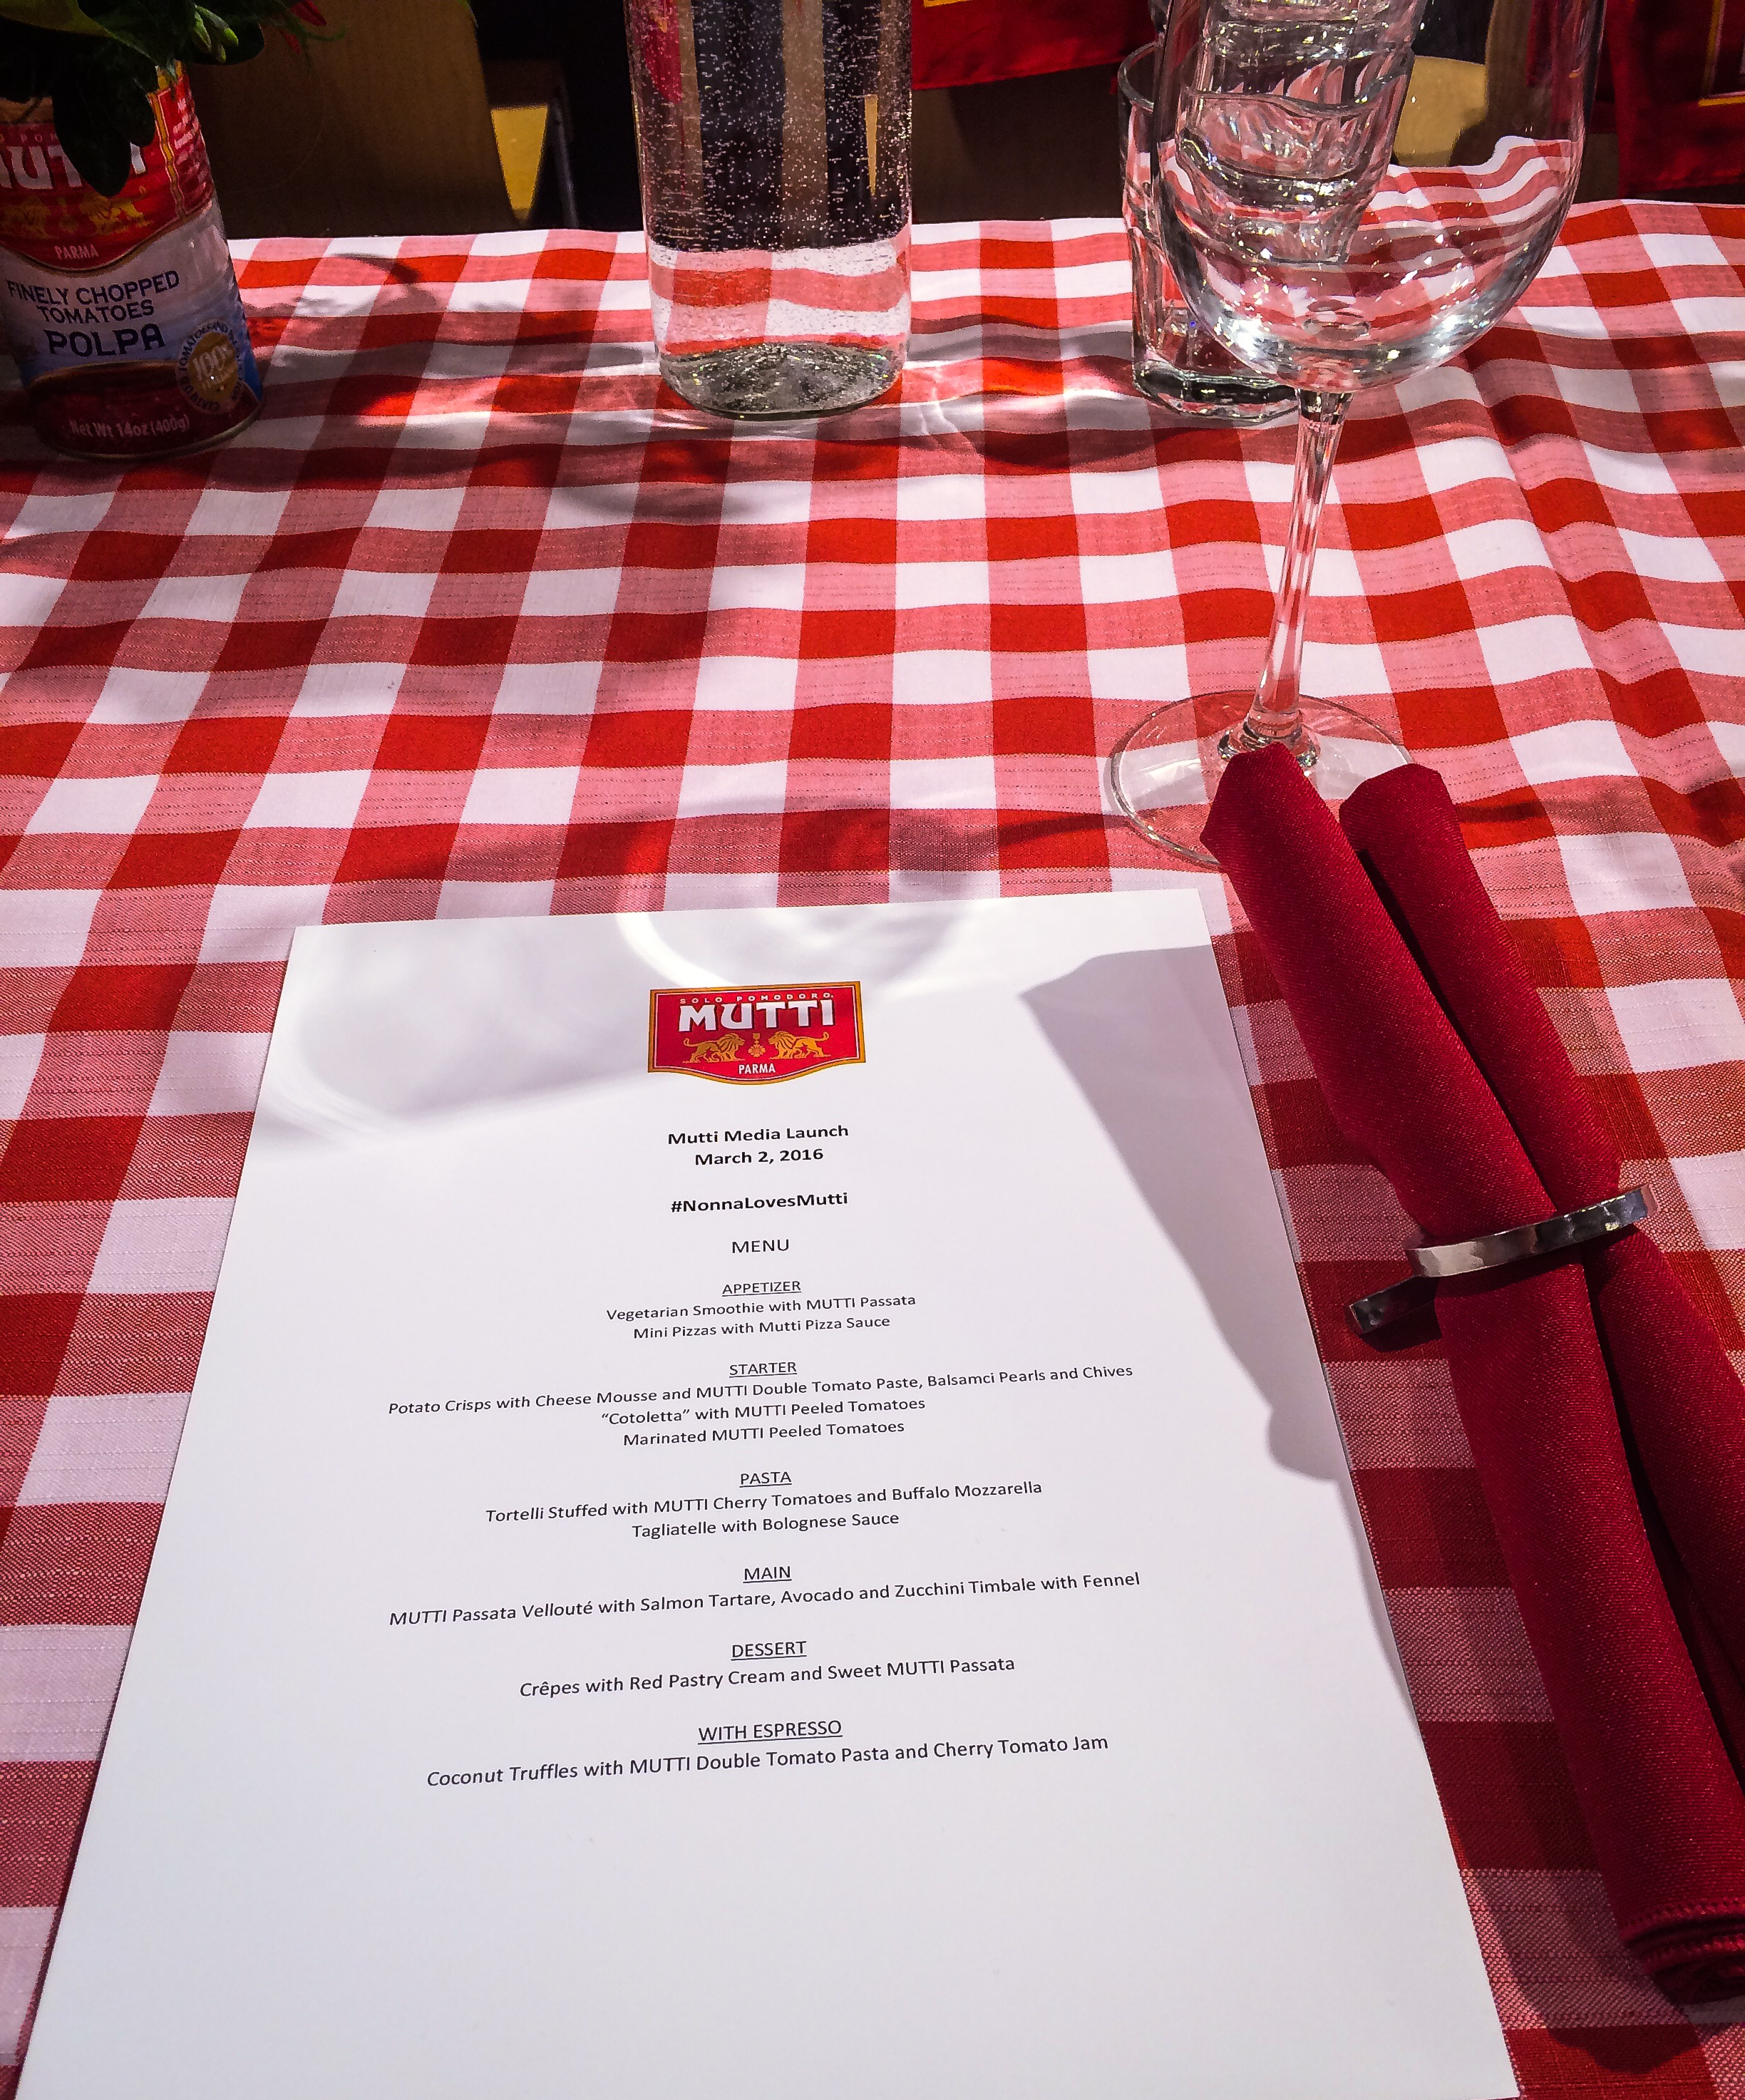 Mutti Menu